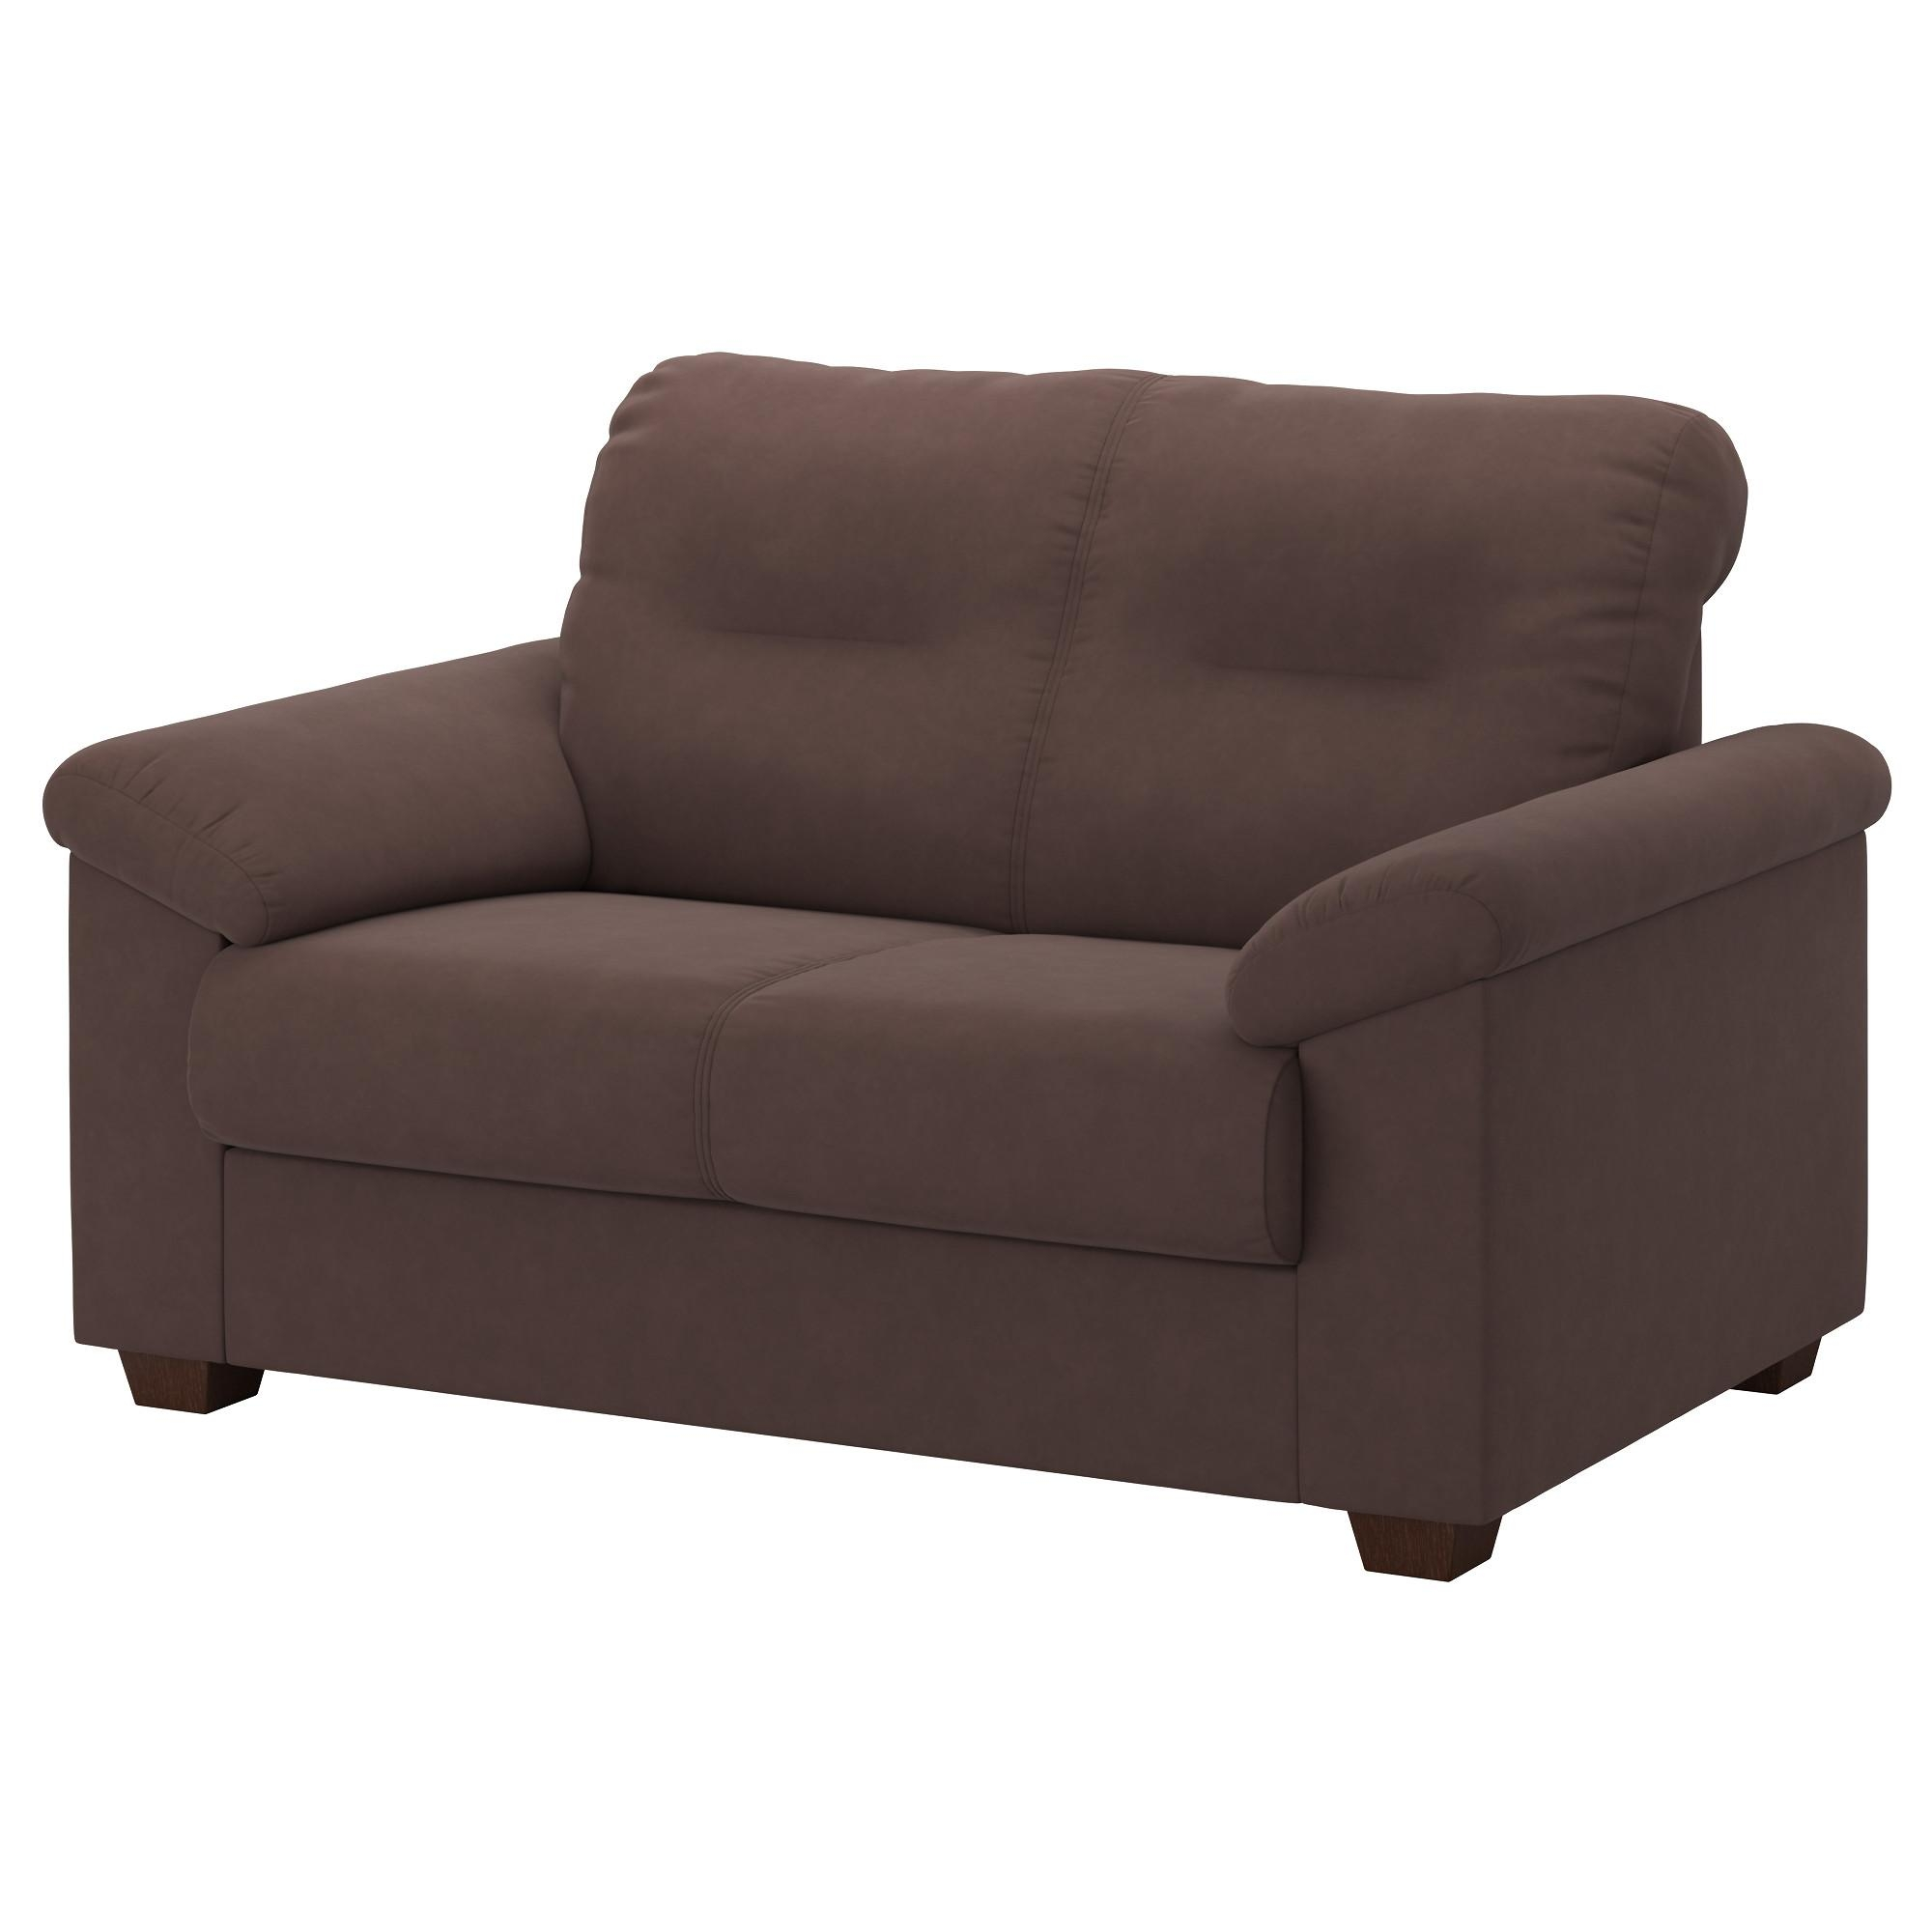 Fabric Two Seater Sofas – Small Fabric Sofas – Ikea With Regard To Small Sofas Ikea (View 8 of 20)